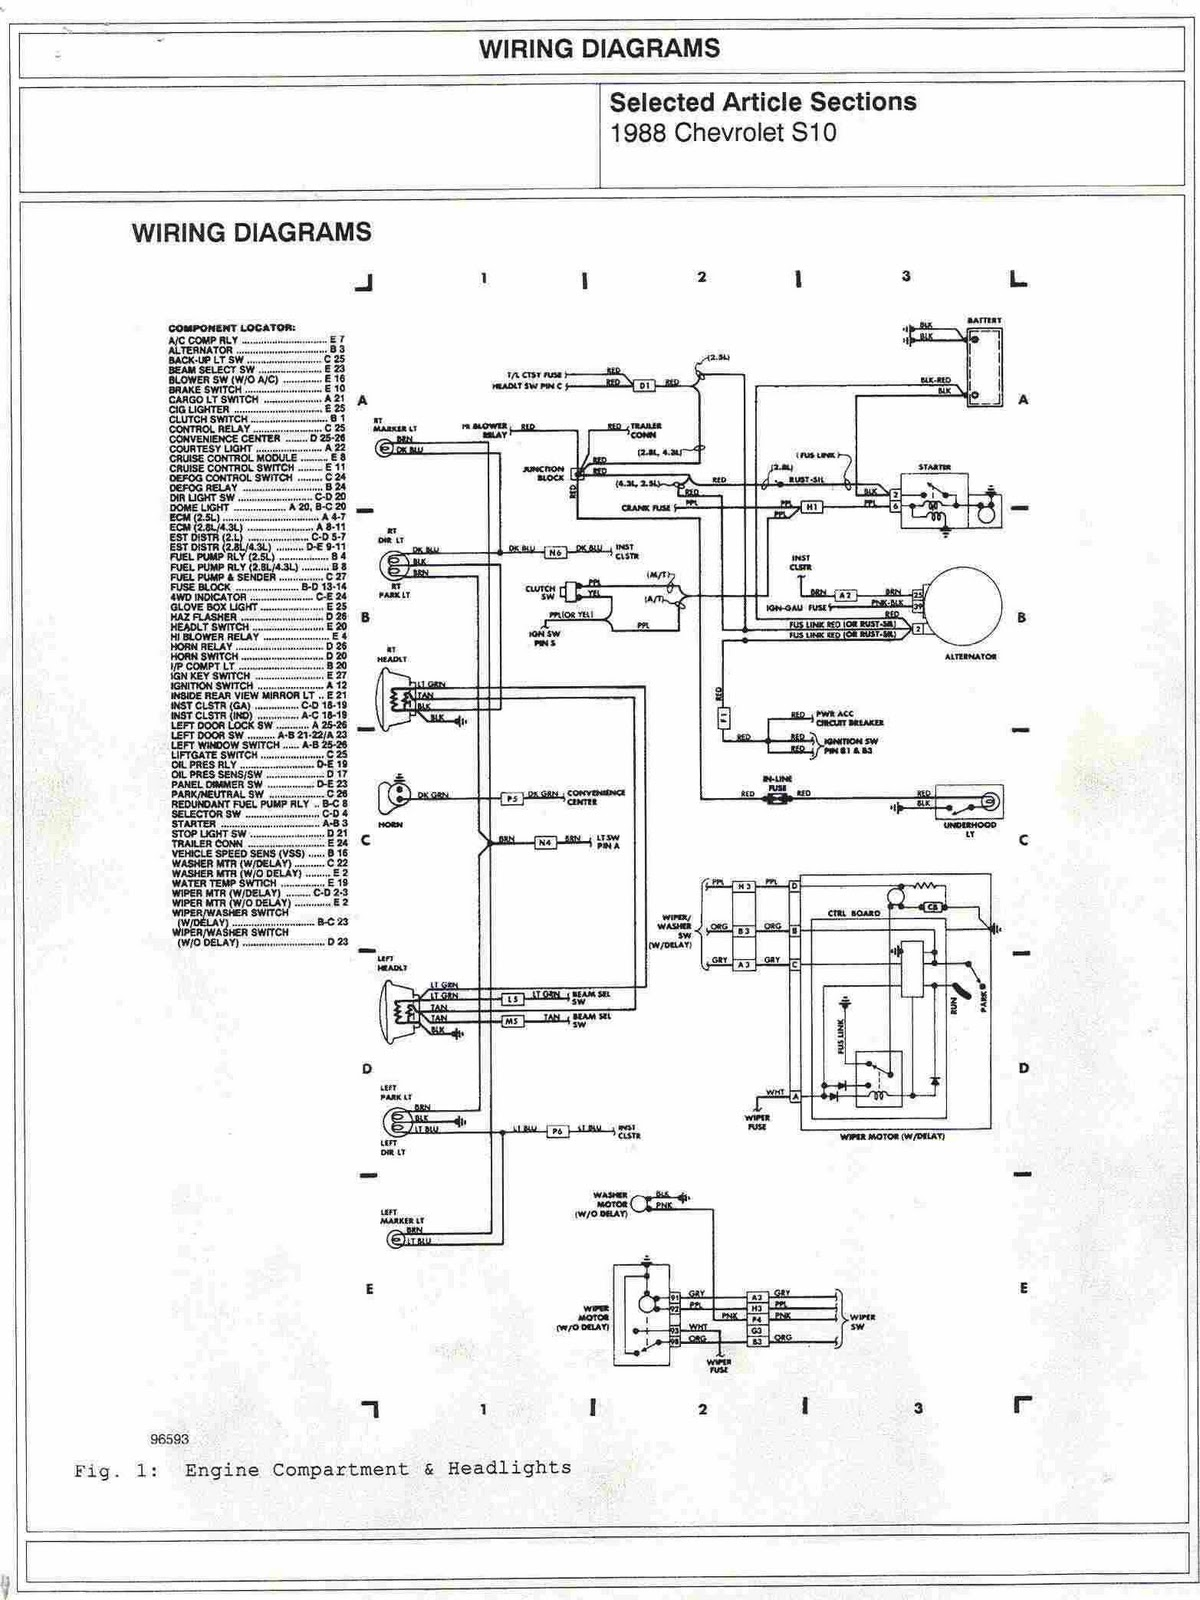 1988+Chevrolet+S10+Engine+Compartment+and+Headlights+Wiring+Diagrams 95 s10 wiring diagram 95 tahoe wiring diagram \u2022 wiring diagrams 6 Volt Farmall H Wiring Diagram at fashall.co